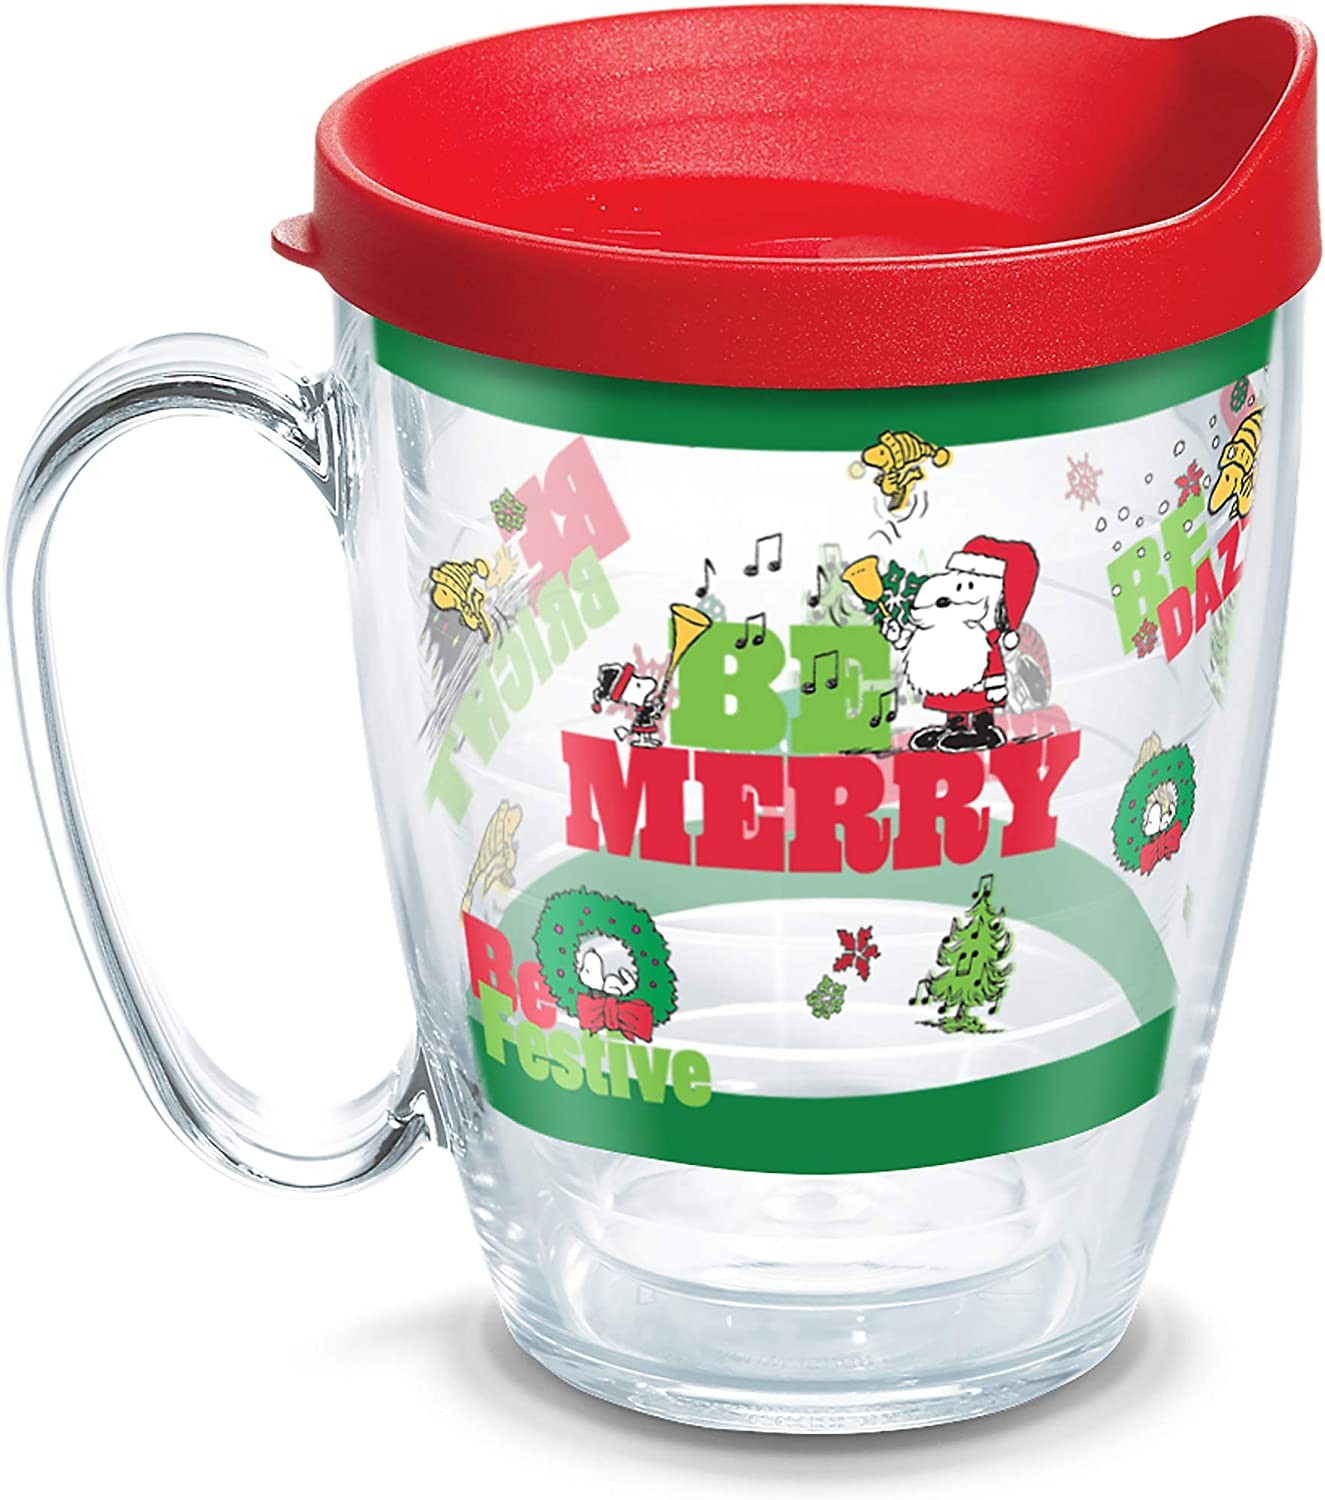 Tervis 1335799 Peanuts Holiday 2019 Insulated Tumbler with Wrap and Red Lid, 16 oz, Clear